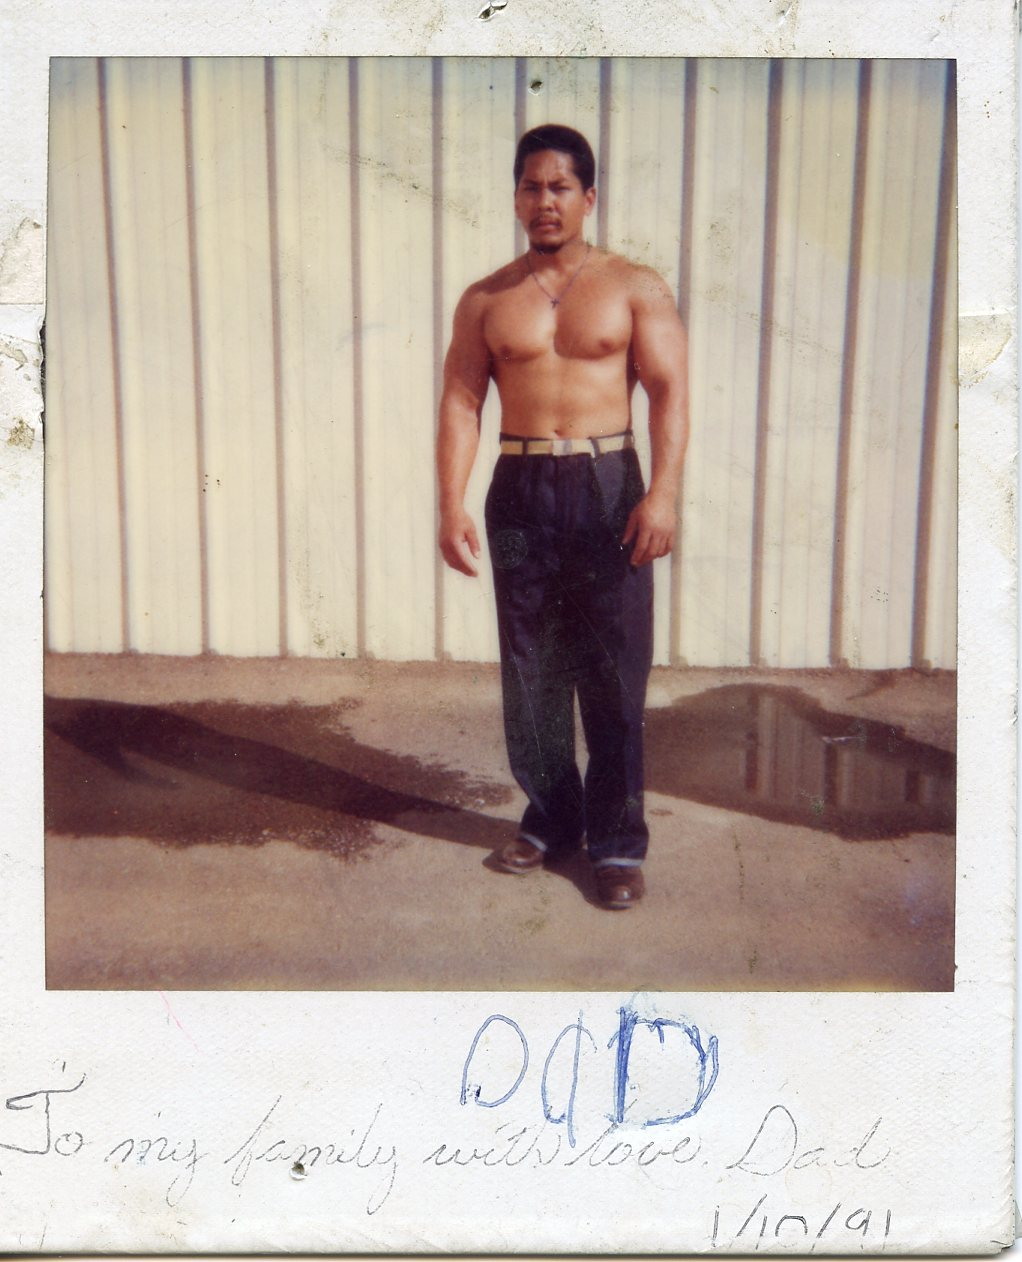 Caption: Melissa Dueñas' dad in Donovan Correctional Facility in the early 1990s., Credit: Photo courtesy of Melissa Dueñas